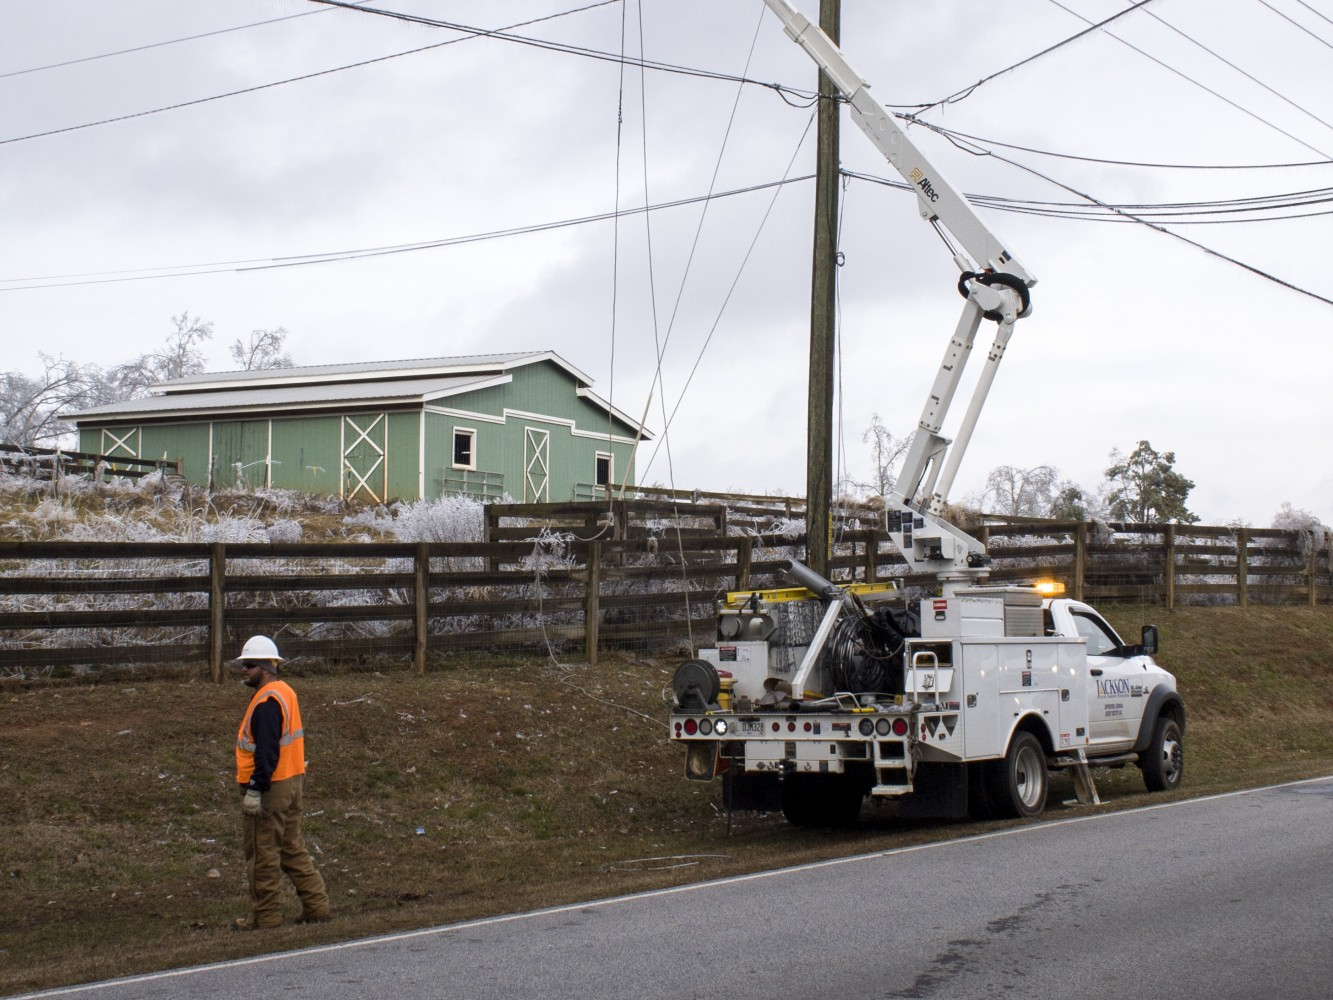 Move Over for Utility Workers